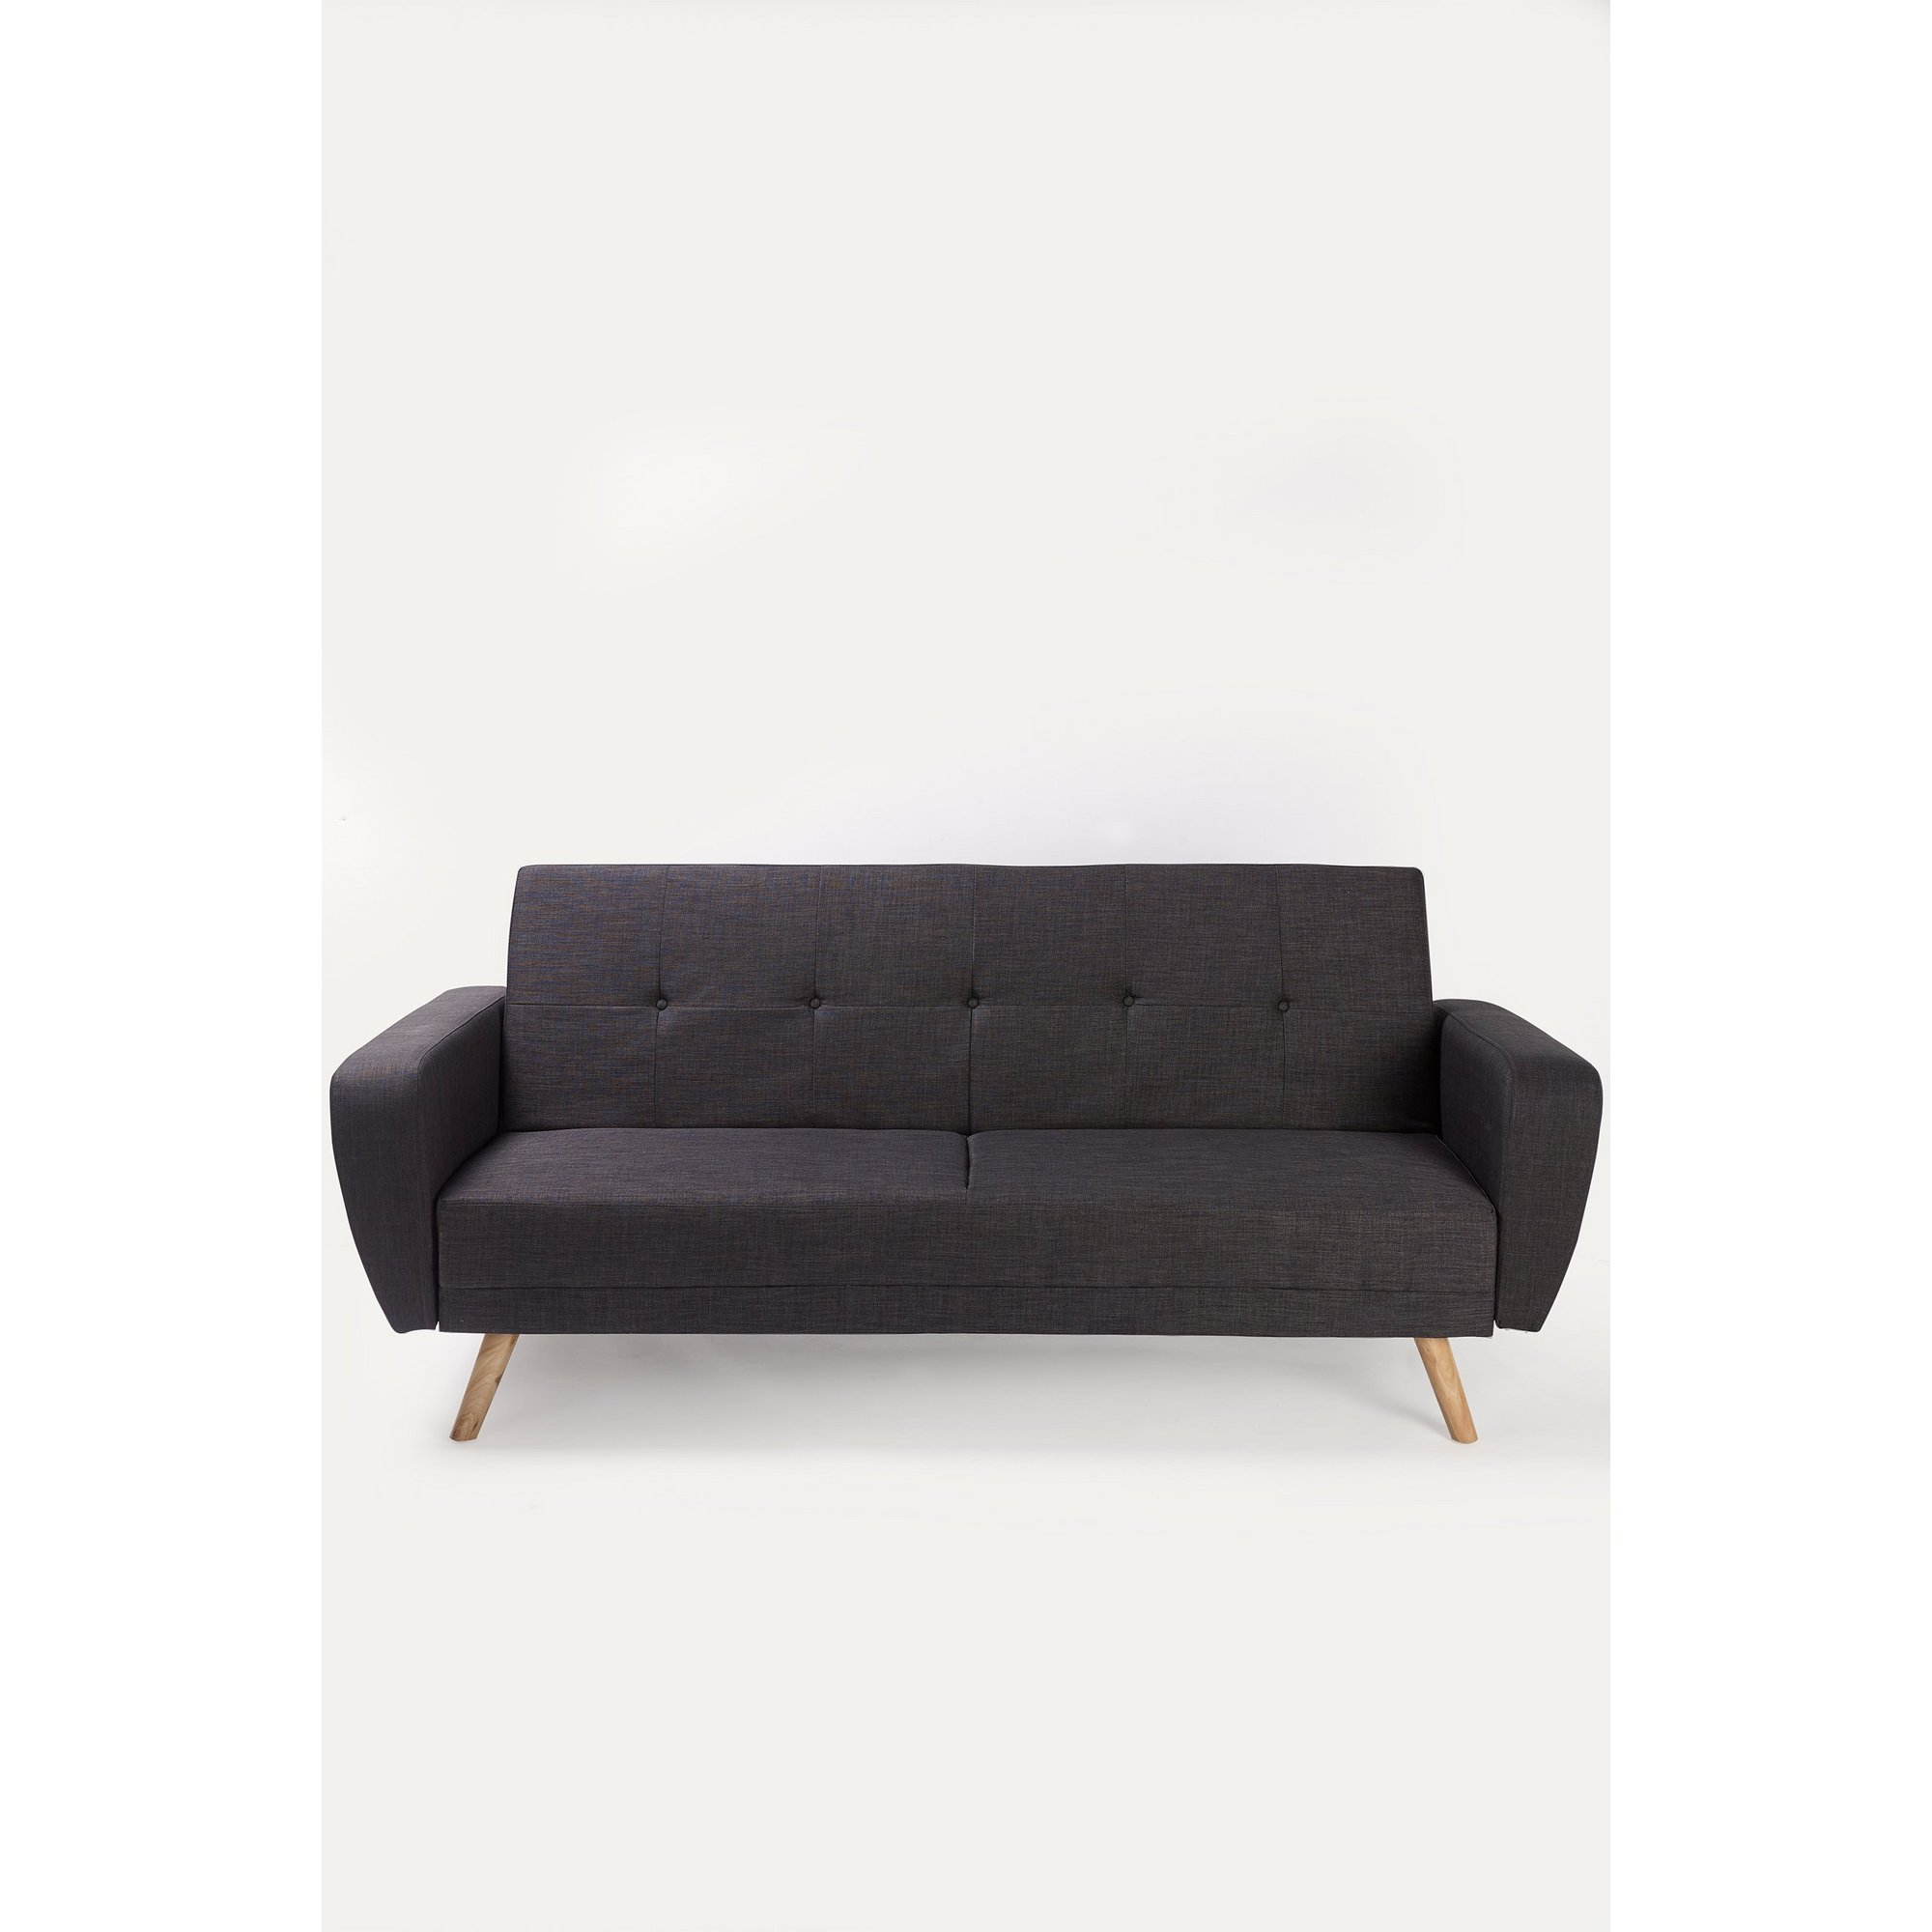 Image of Farrow Large Sofa Bed